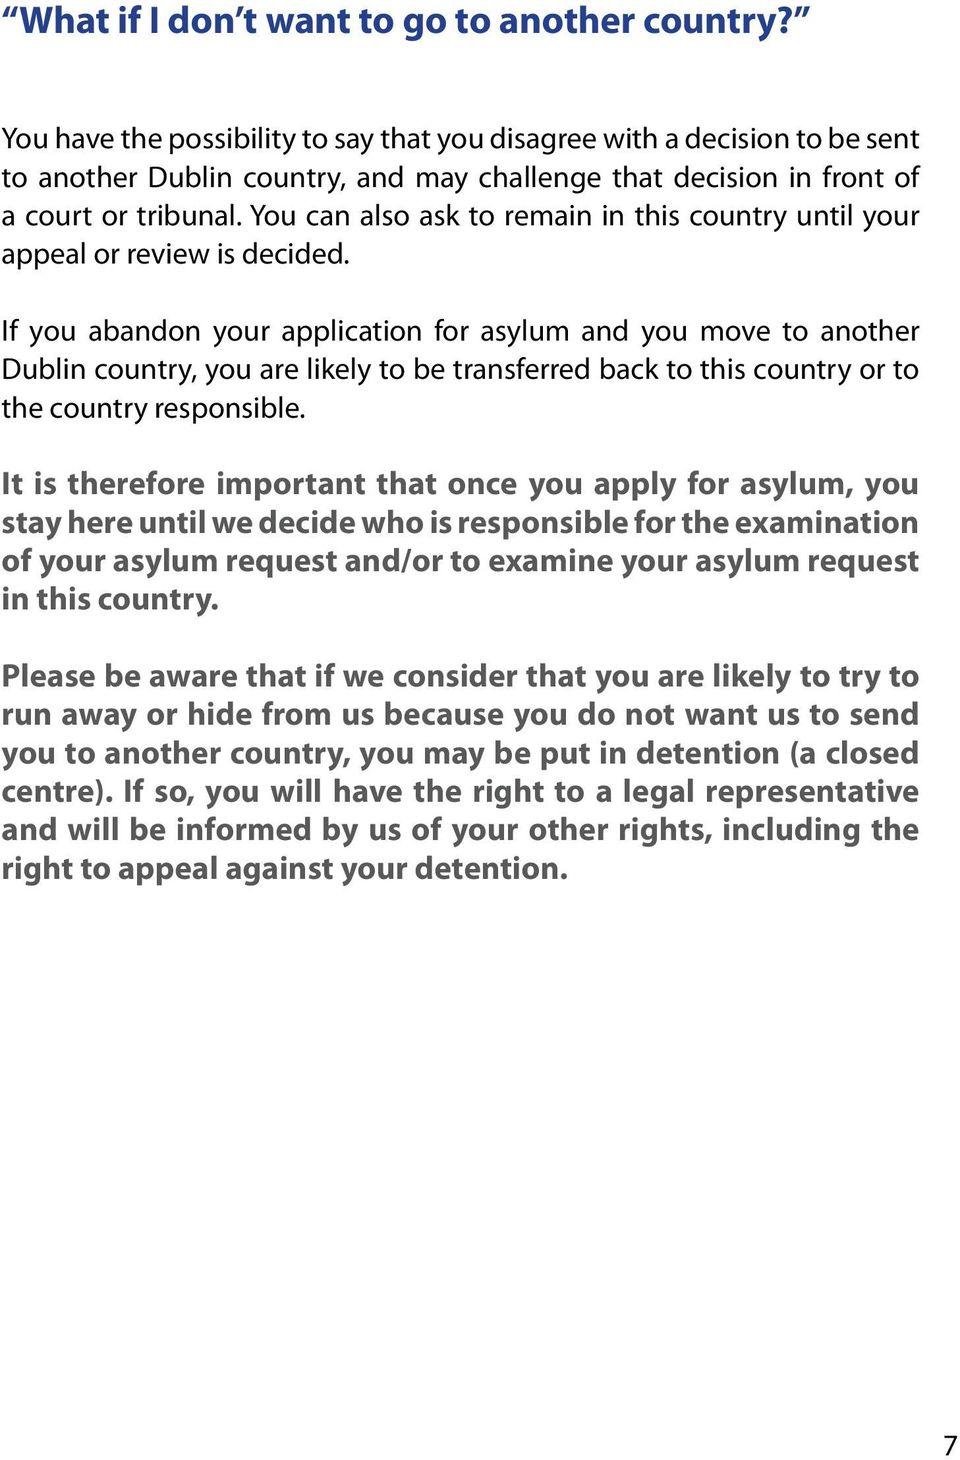 You can also ask to remain in this country until your appeal or review is decided.